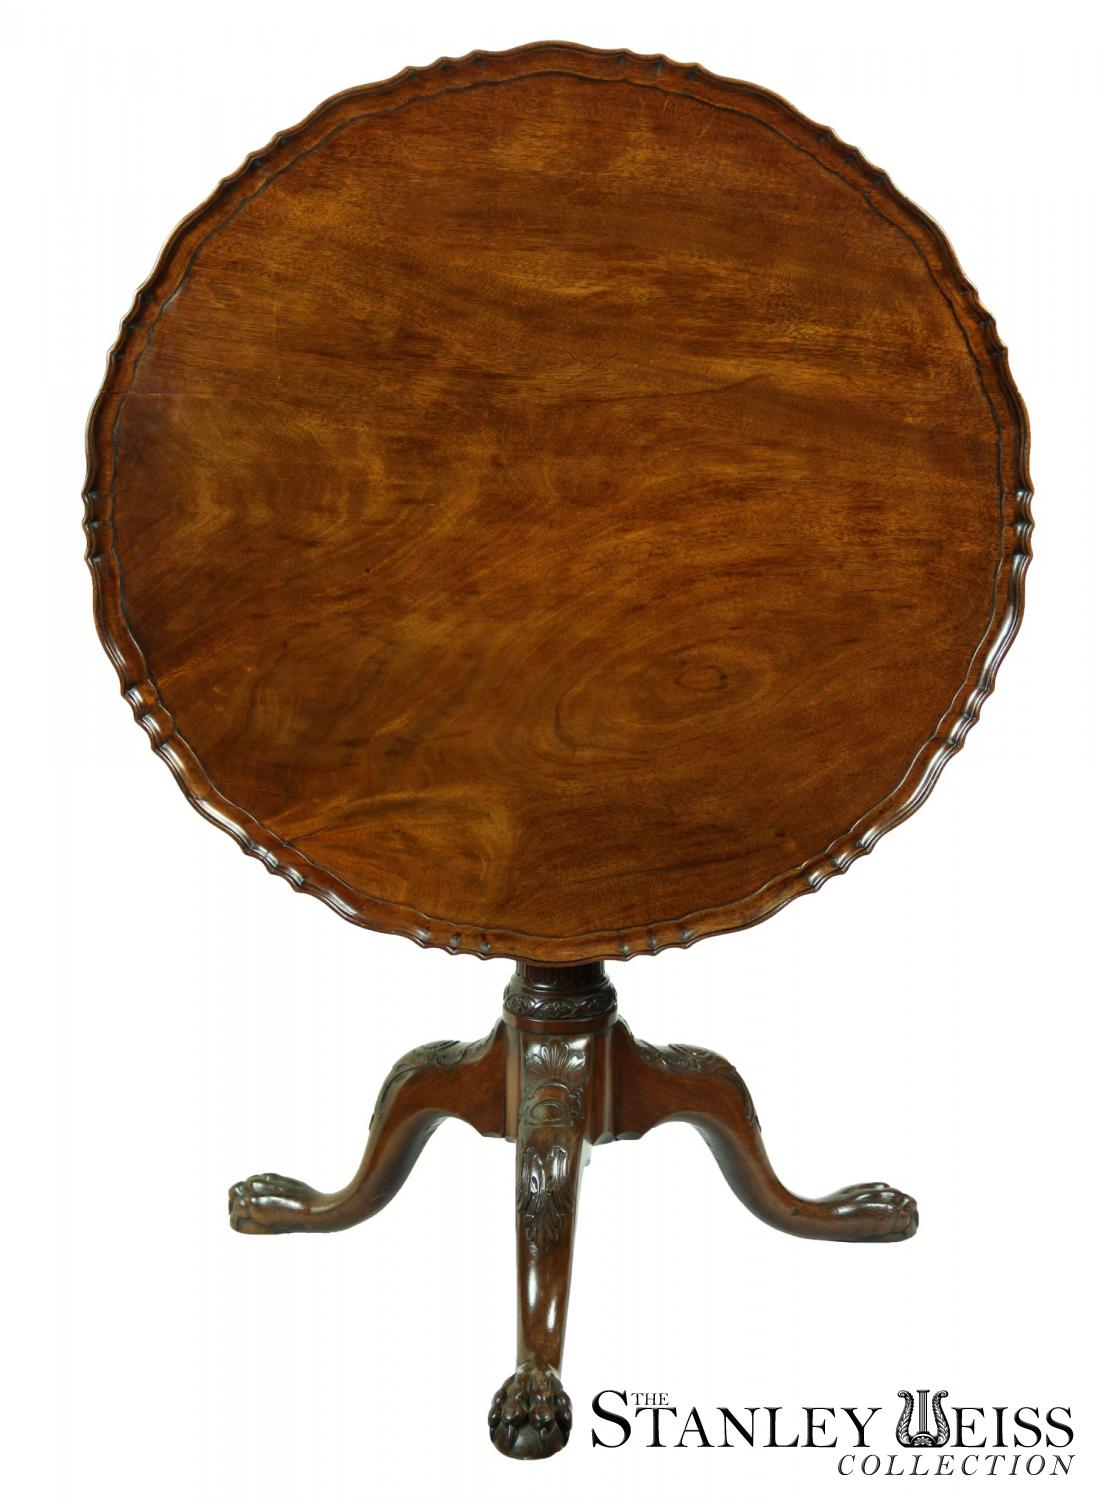 A Magnificent Chippendale Mahogany Tilt Top Table With Pie Crust England C 1780